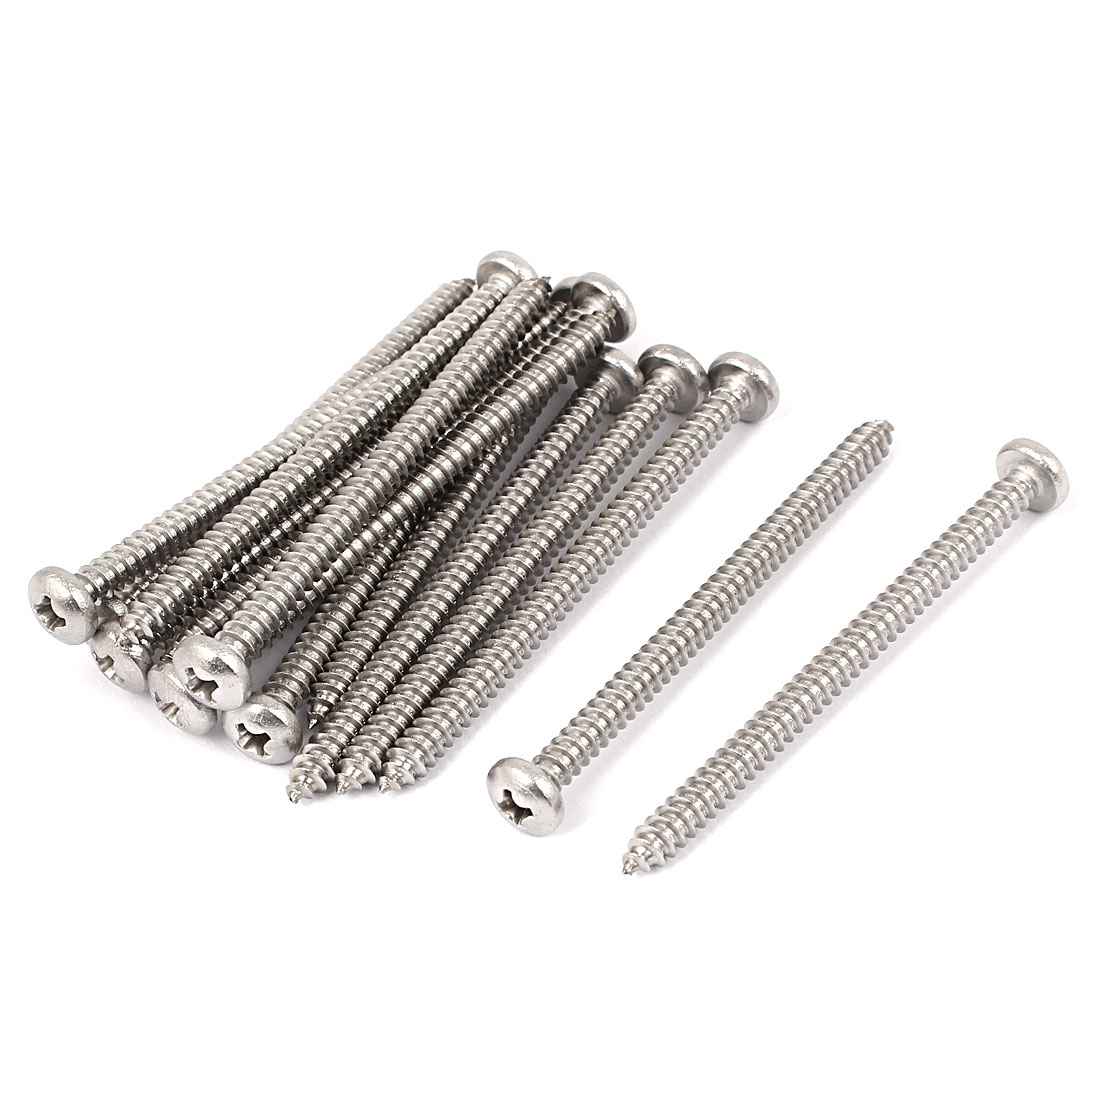 #10 M4.8x70mm Stainless Steel Phillips Round Pan Head Self Tapping Screws 15pcs